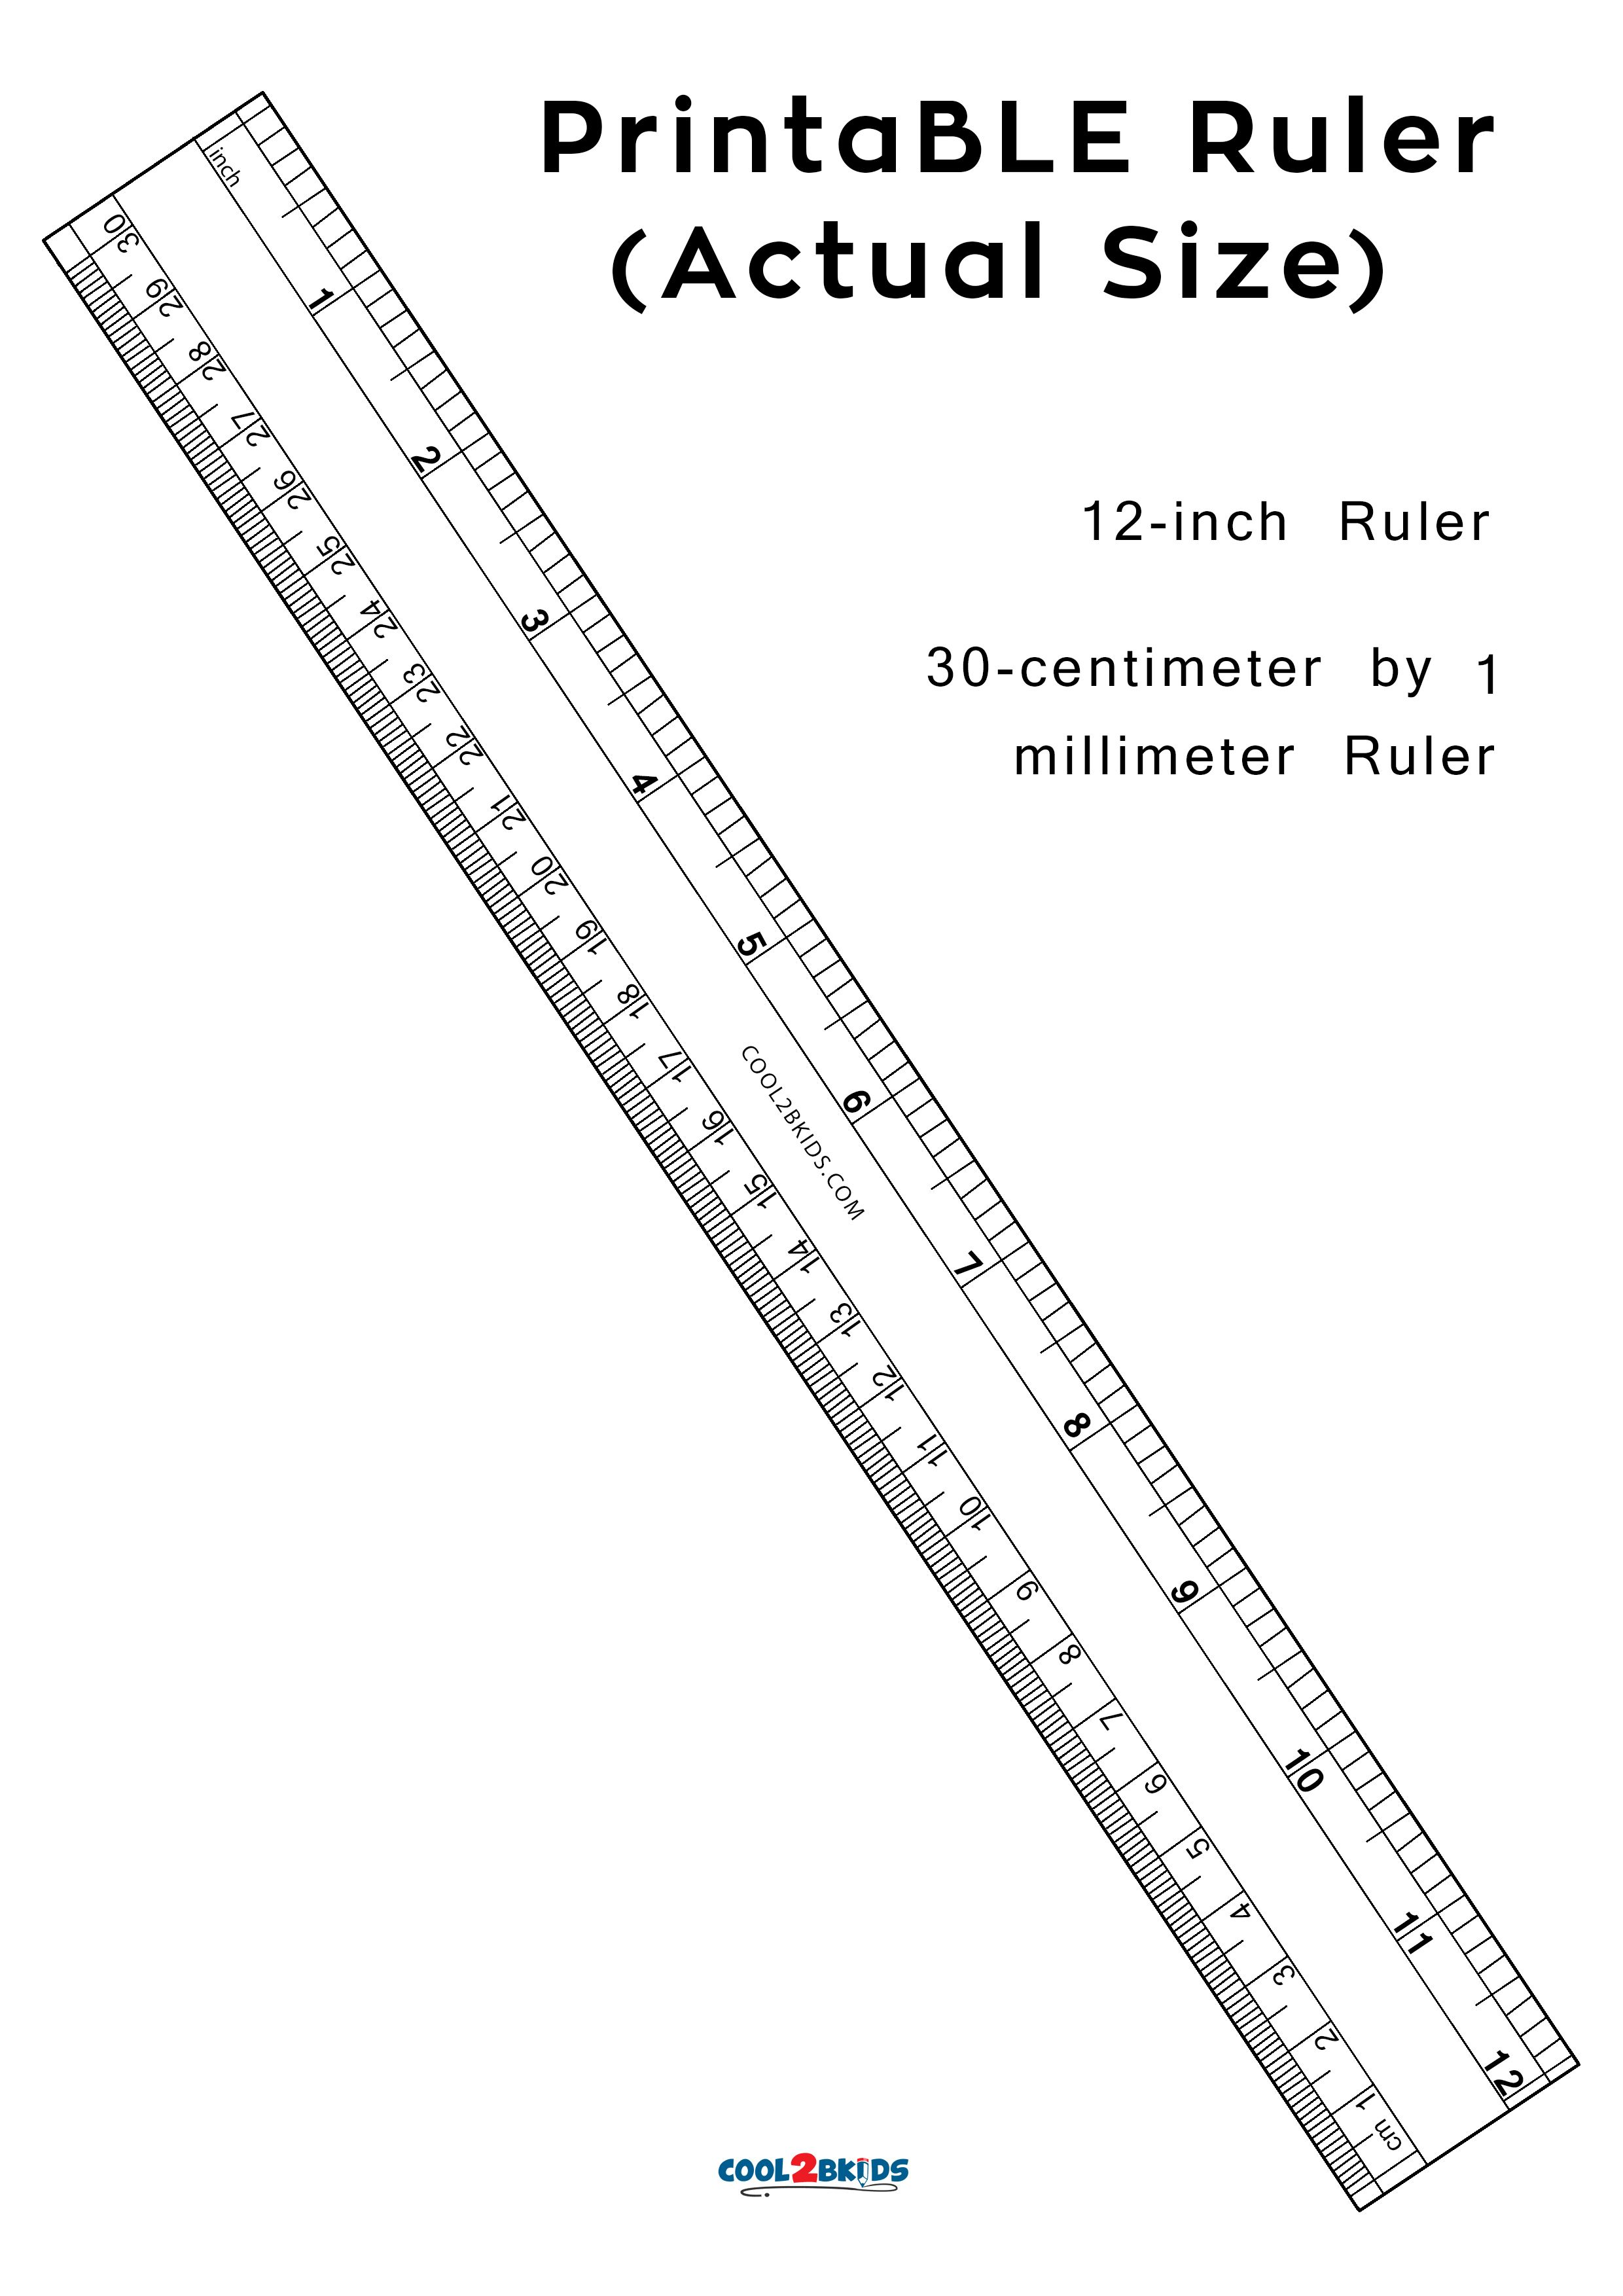 Printable Ruler 12 Inch Actual Size Cool2bkids Printable Ruler Ruler Millimeter Ruler